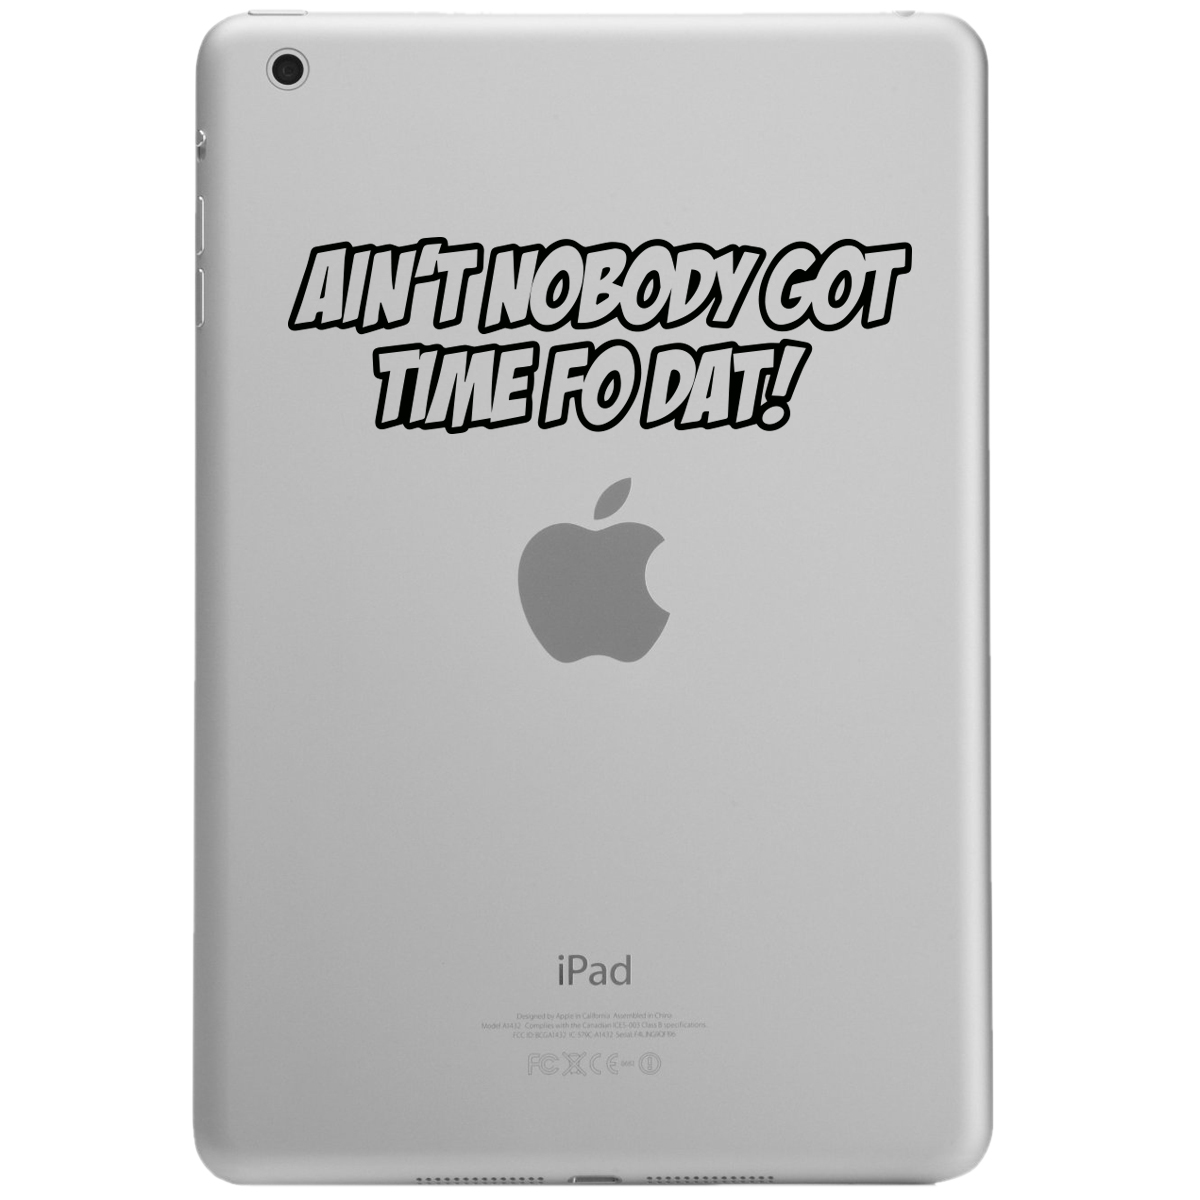 Funny Ain't Nobody Got Time Fo Dat iPad Tablet Vinyl Sticker Decal